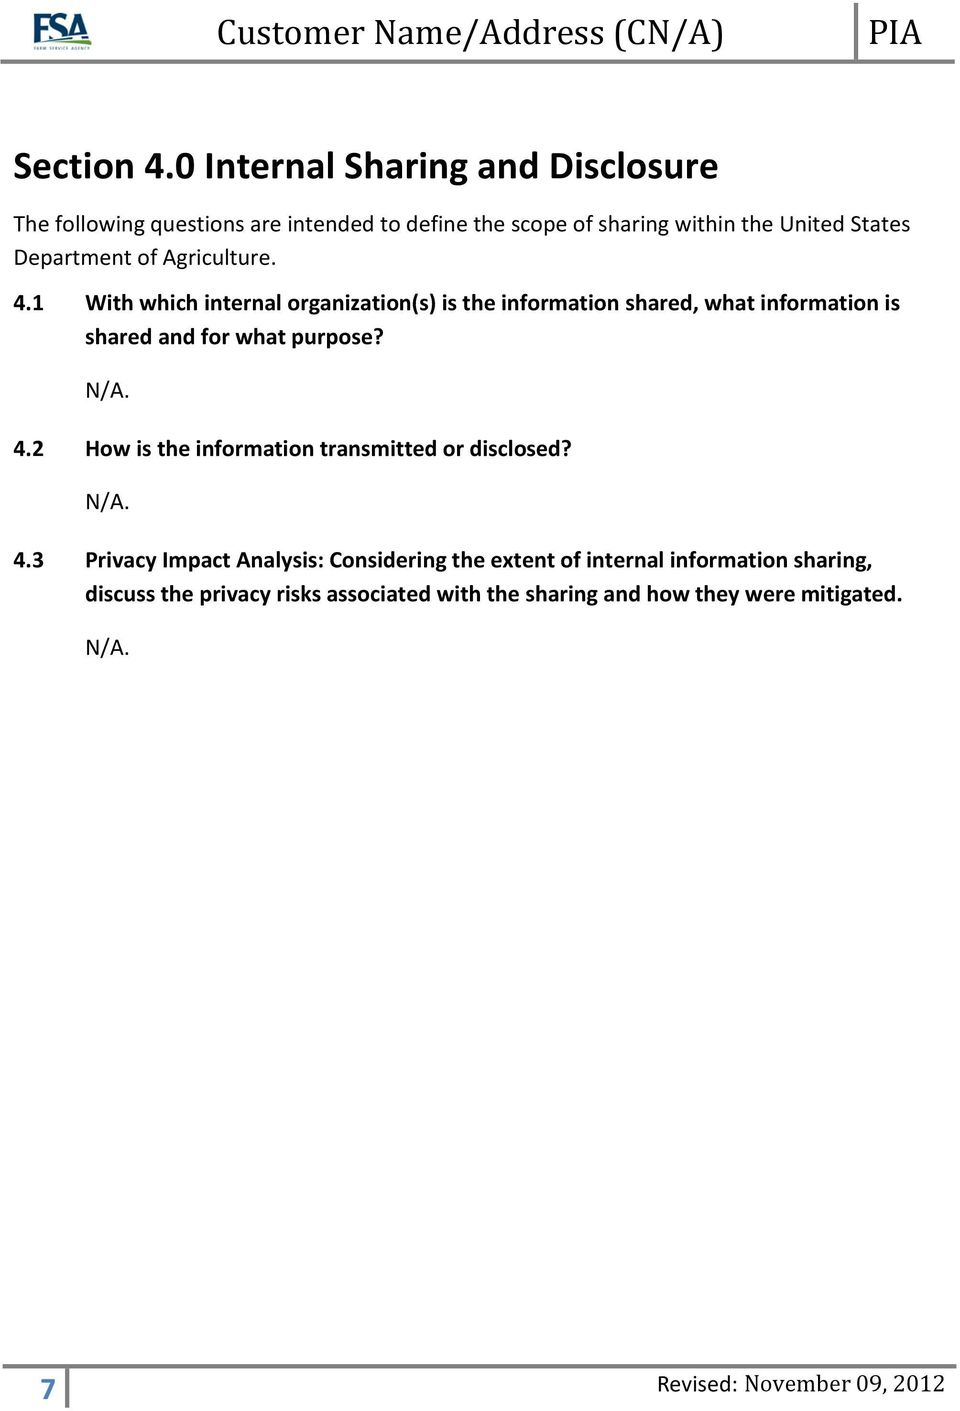 of Agriculture. 4.1 With which internal organization(s) is the information shared, what information is shared and for what purpose? 4.2 How is the information transmitted or disclosed?